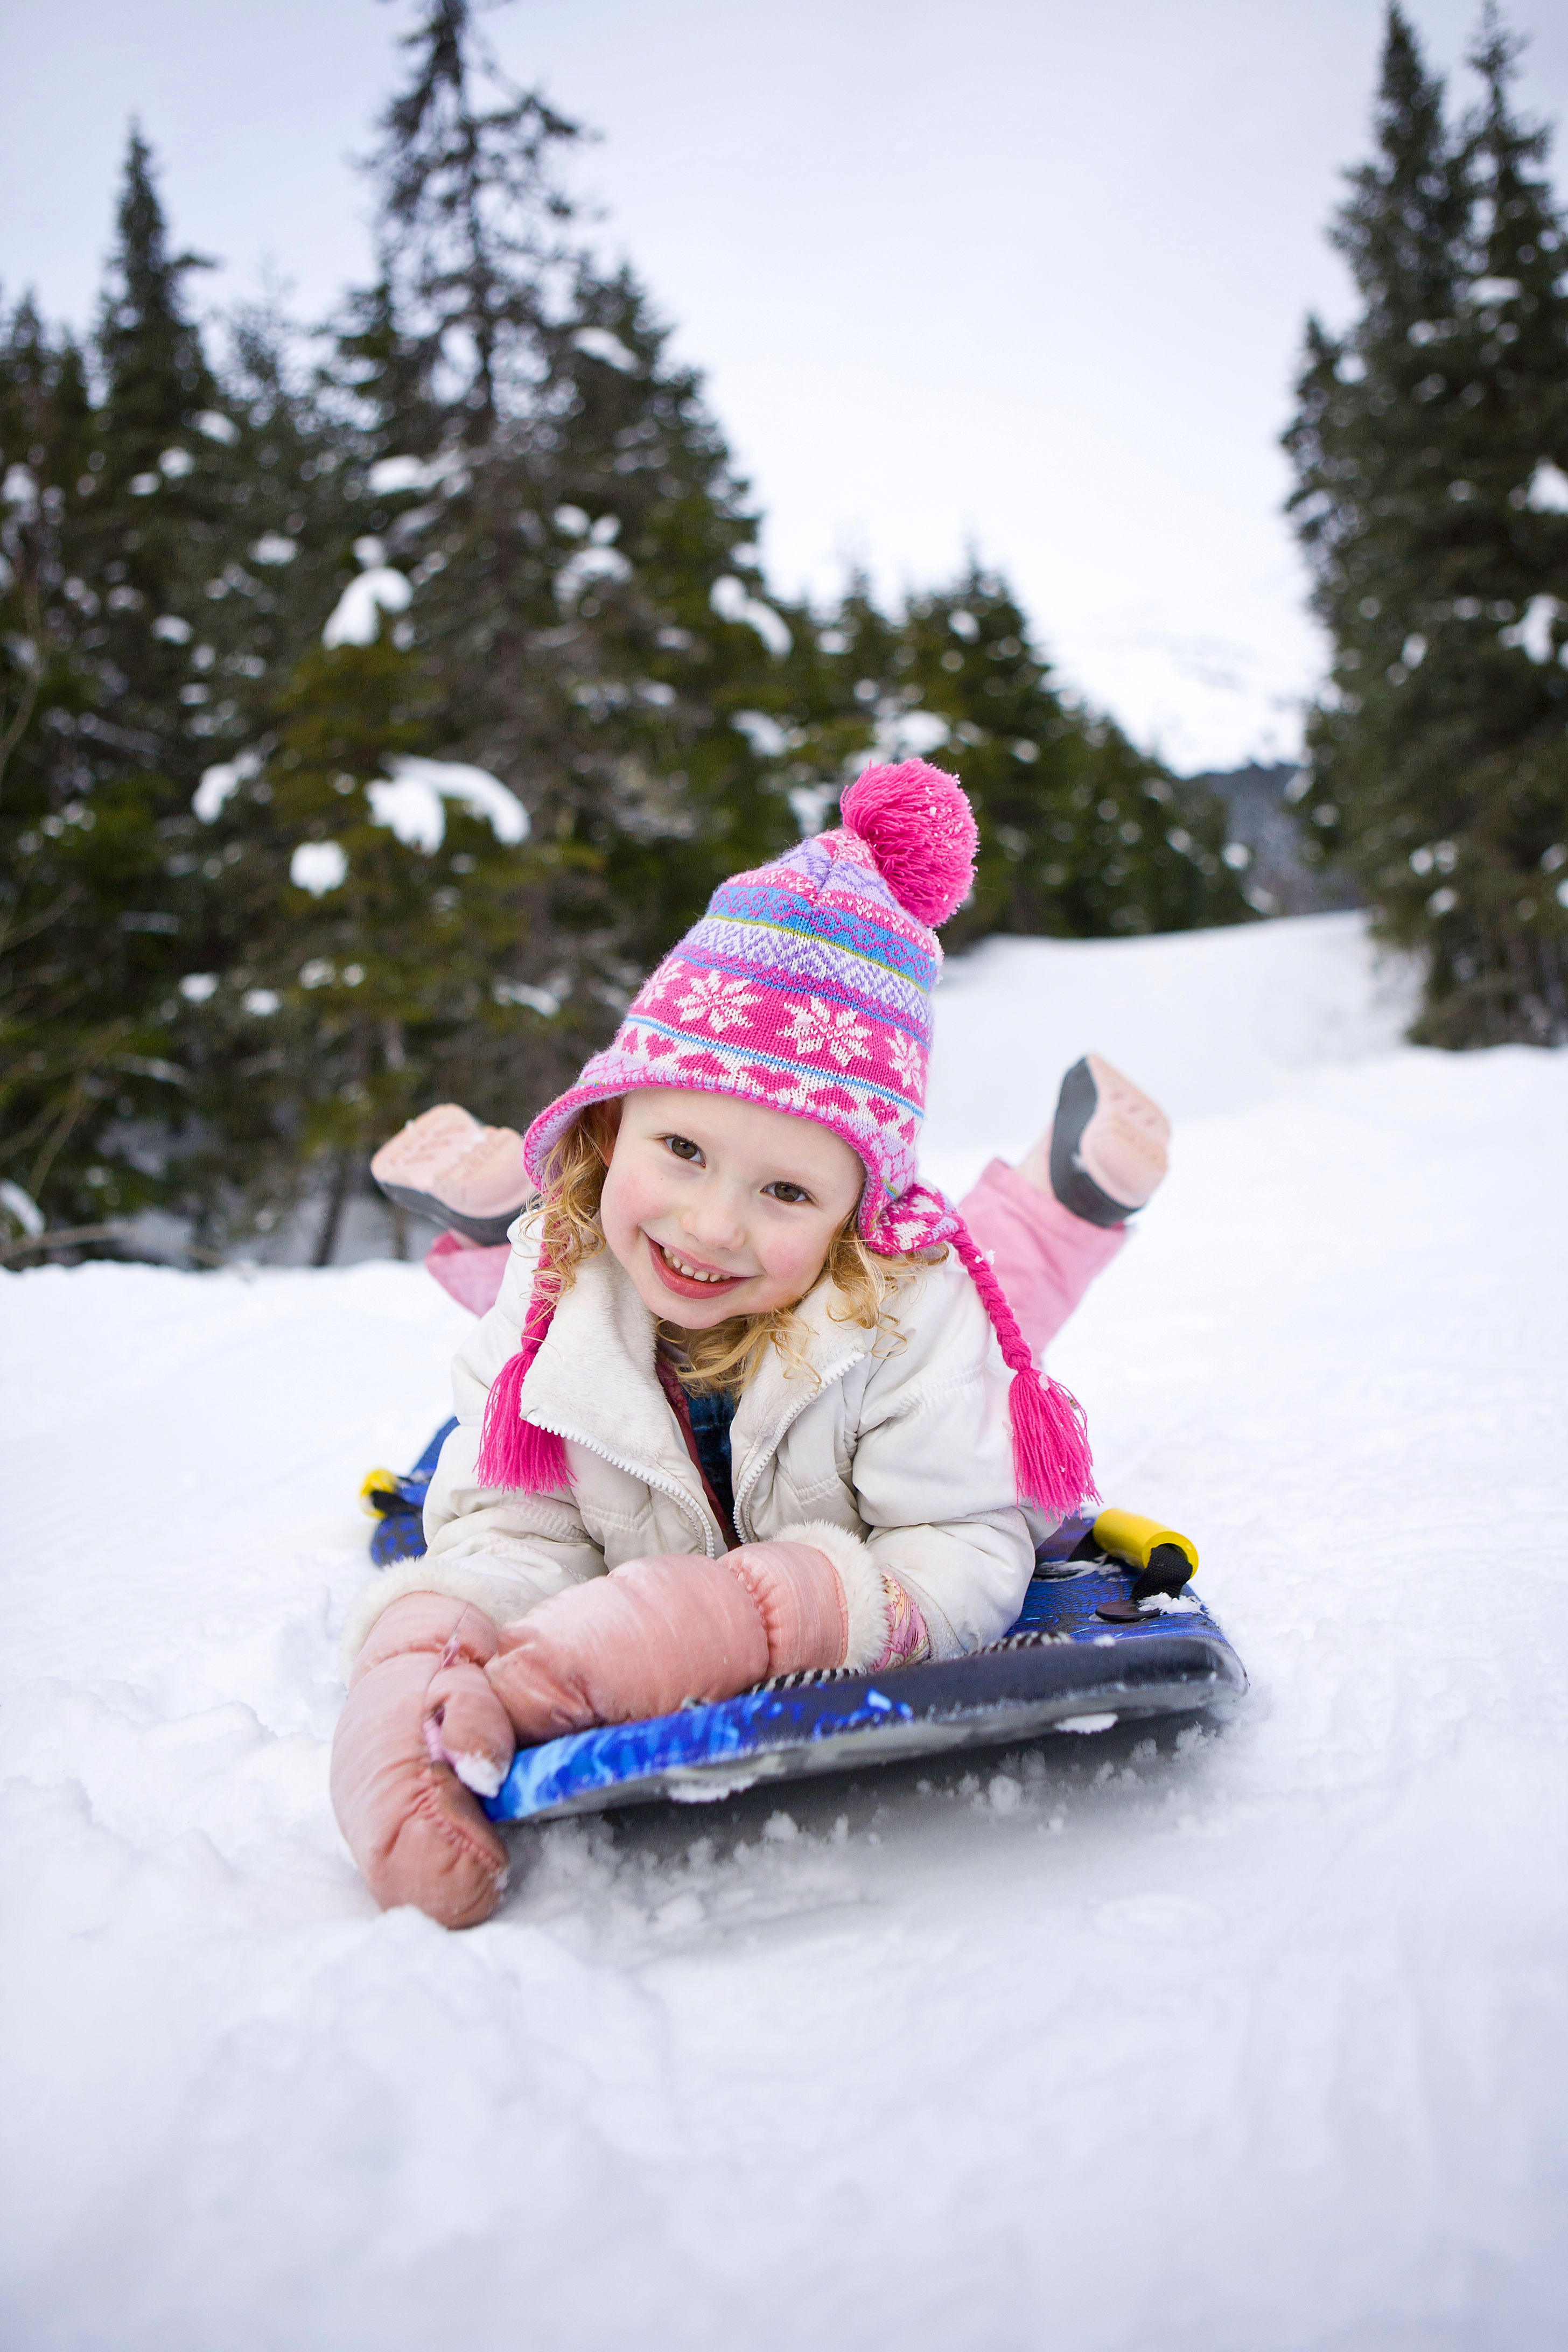 Kids love to play in the snow